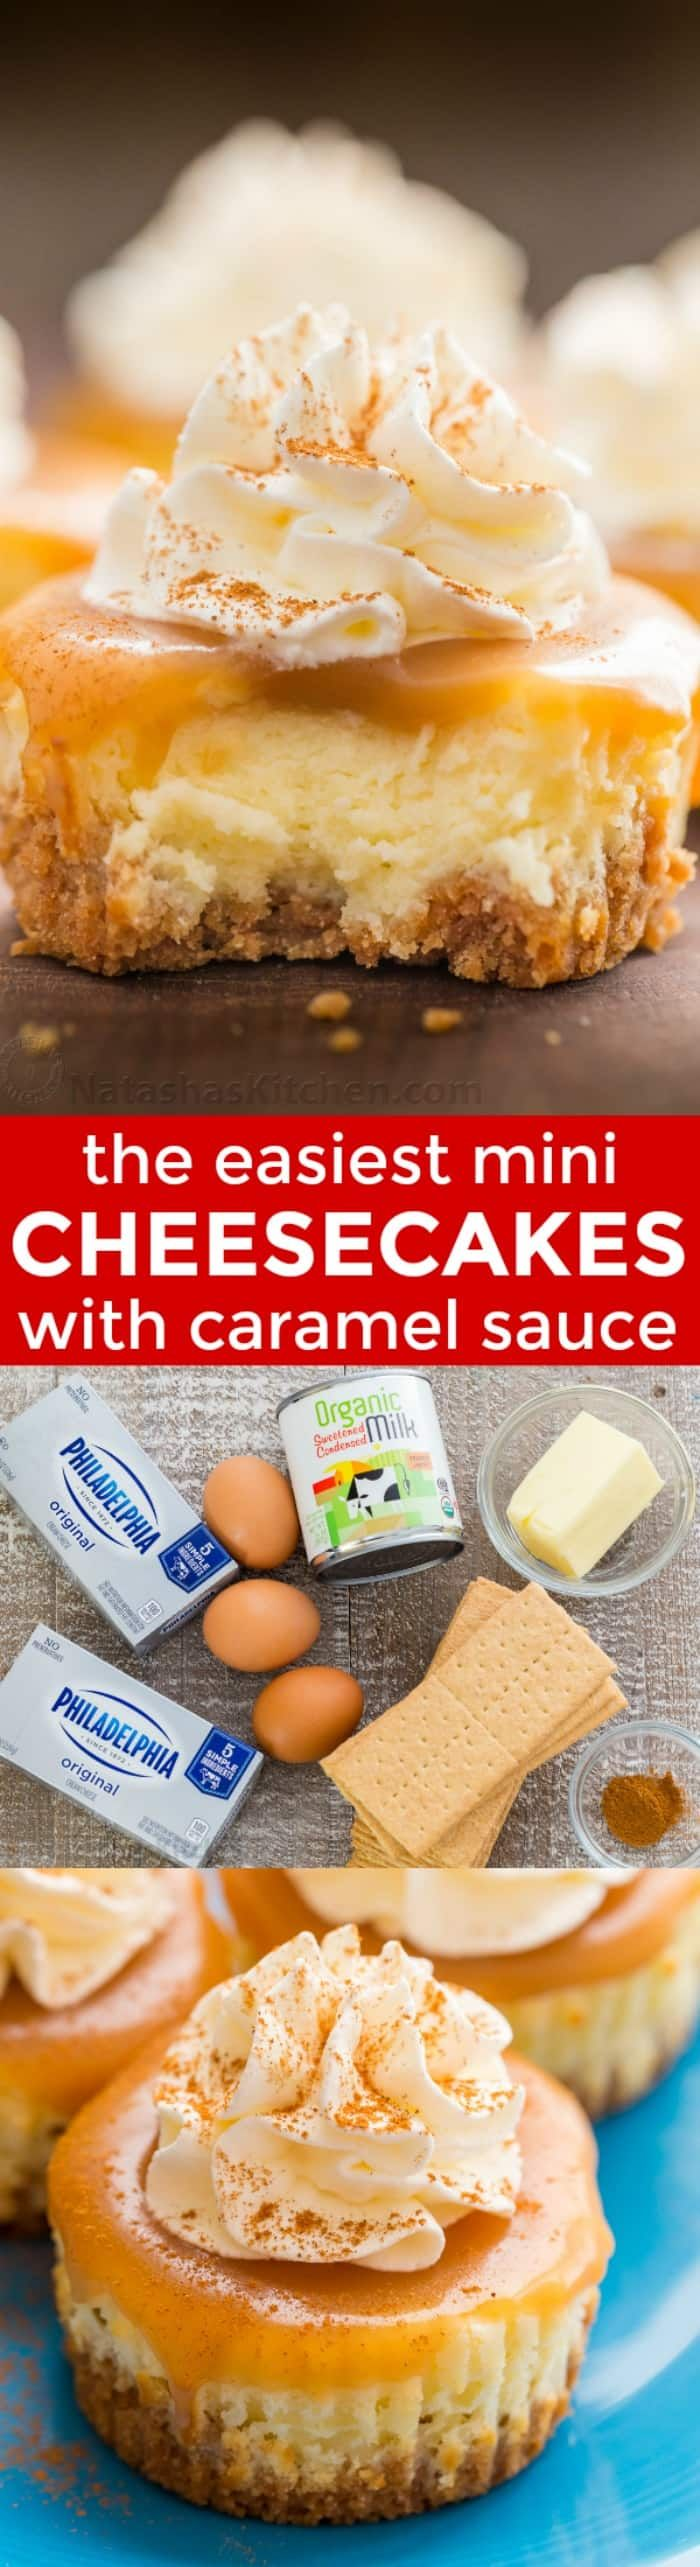 Mini cheesecakes with caramel sauce are so easy and delicious! The base is just 3 ingredients. Mini cheesecake cupcakes are excellent in flavor and texture. | natashaskitchen.com